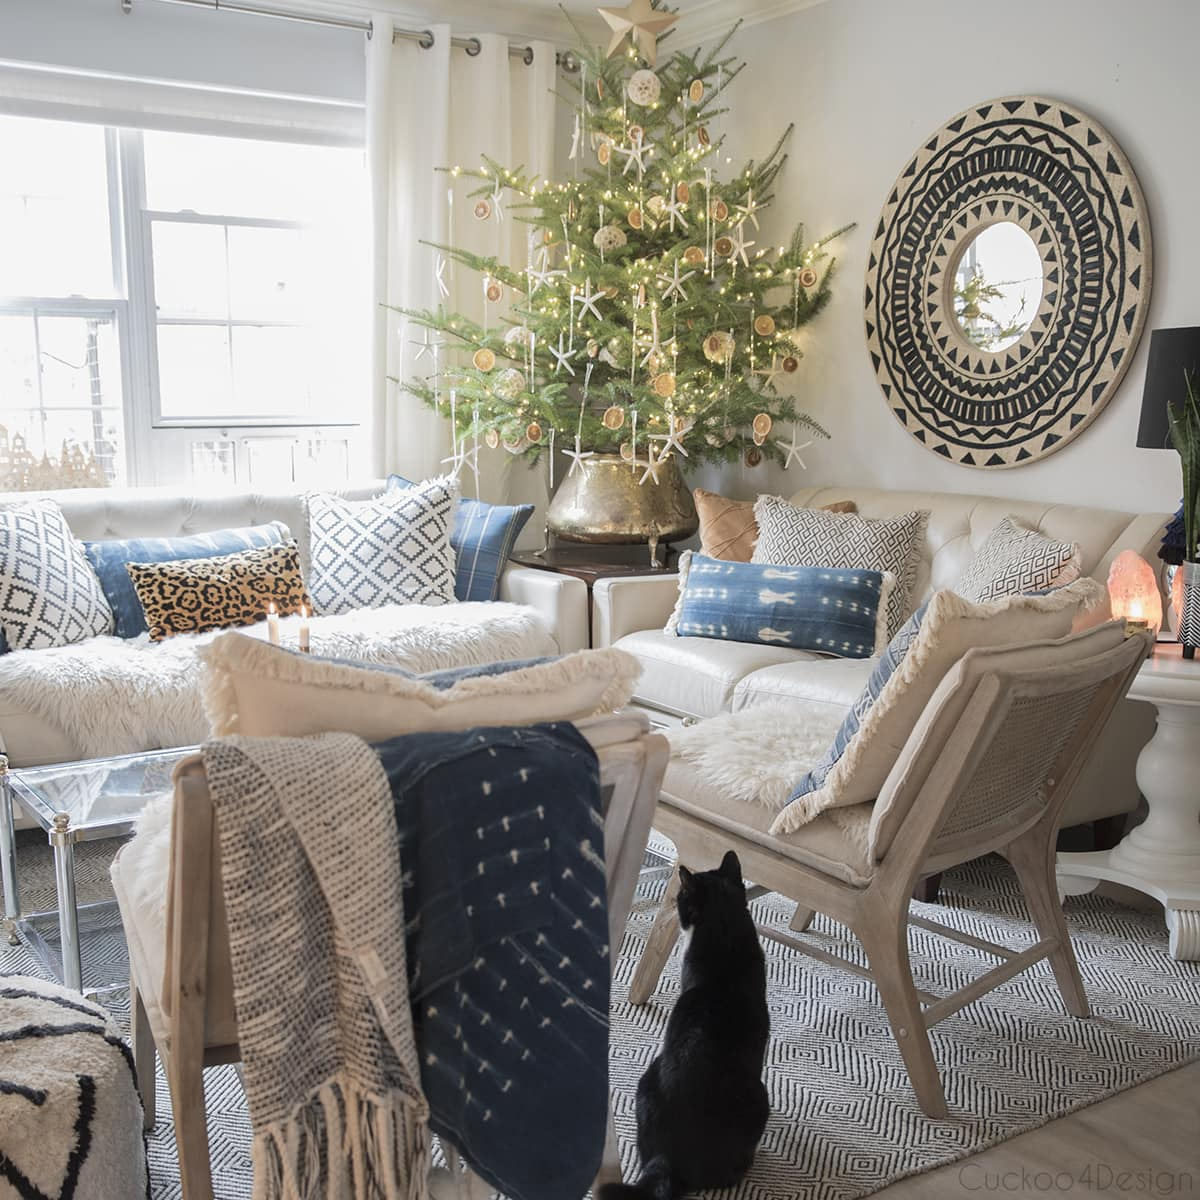 large live tabletop Christmas tree in boho chic living room